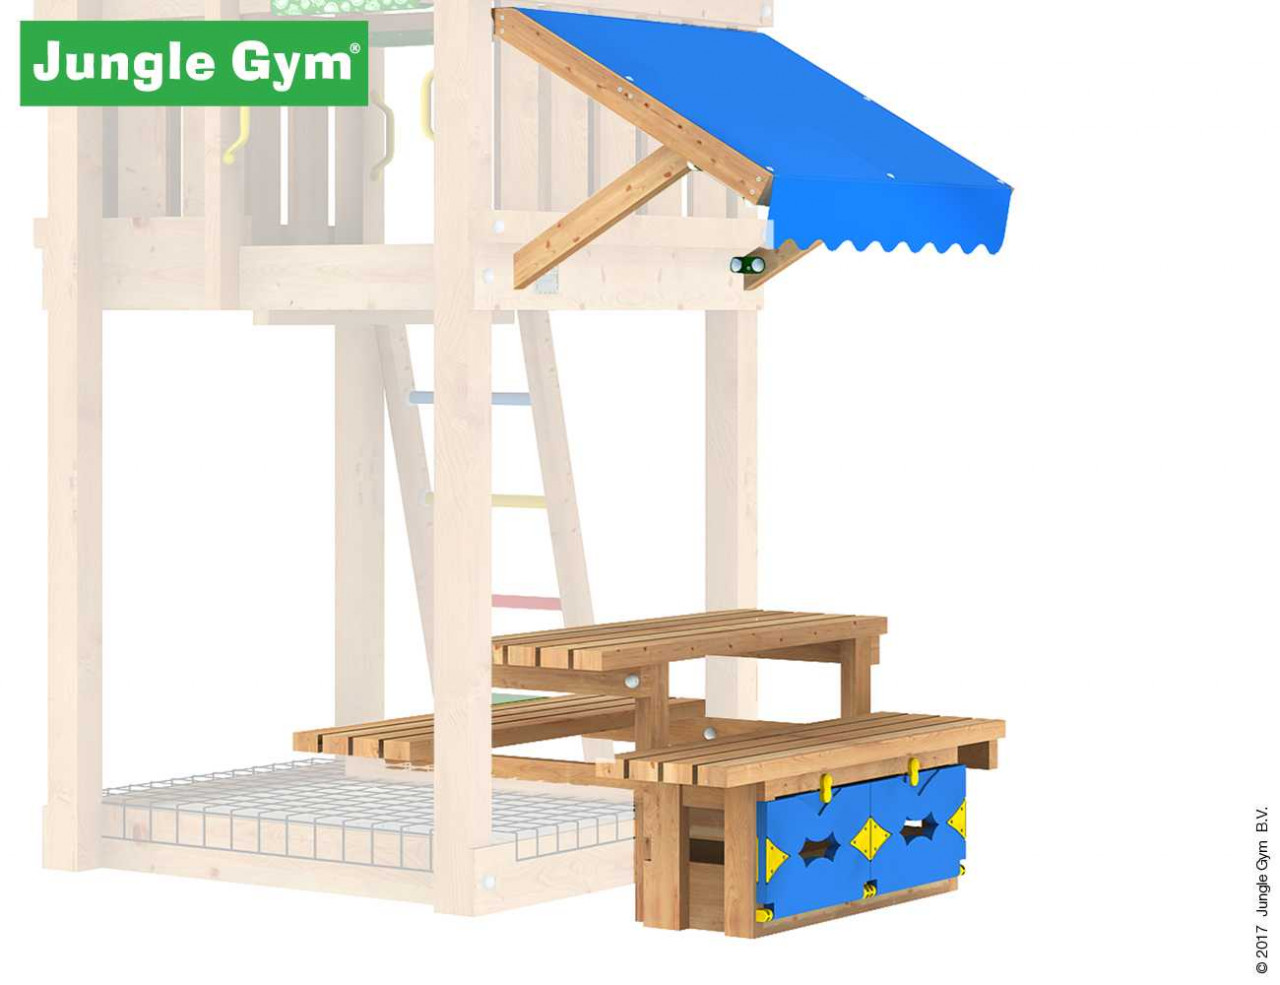 Jungle Gym Picknick-120-Modul in Douglasie natur